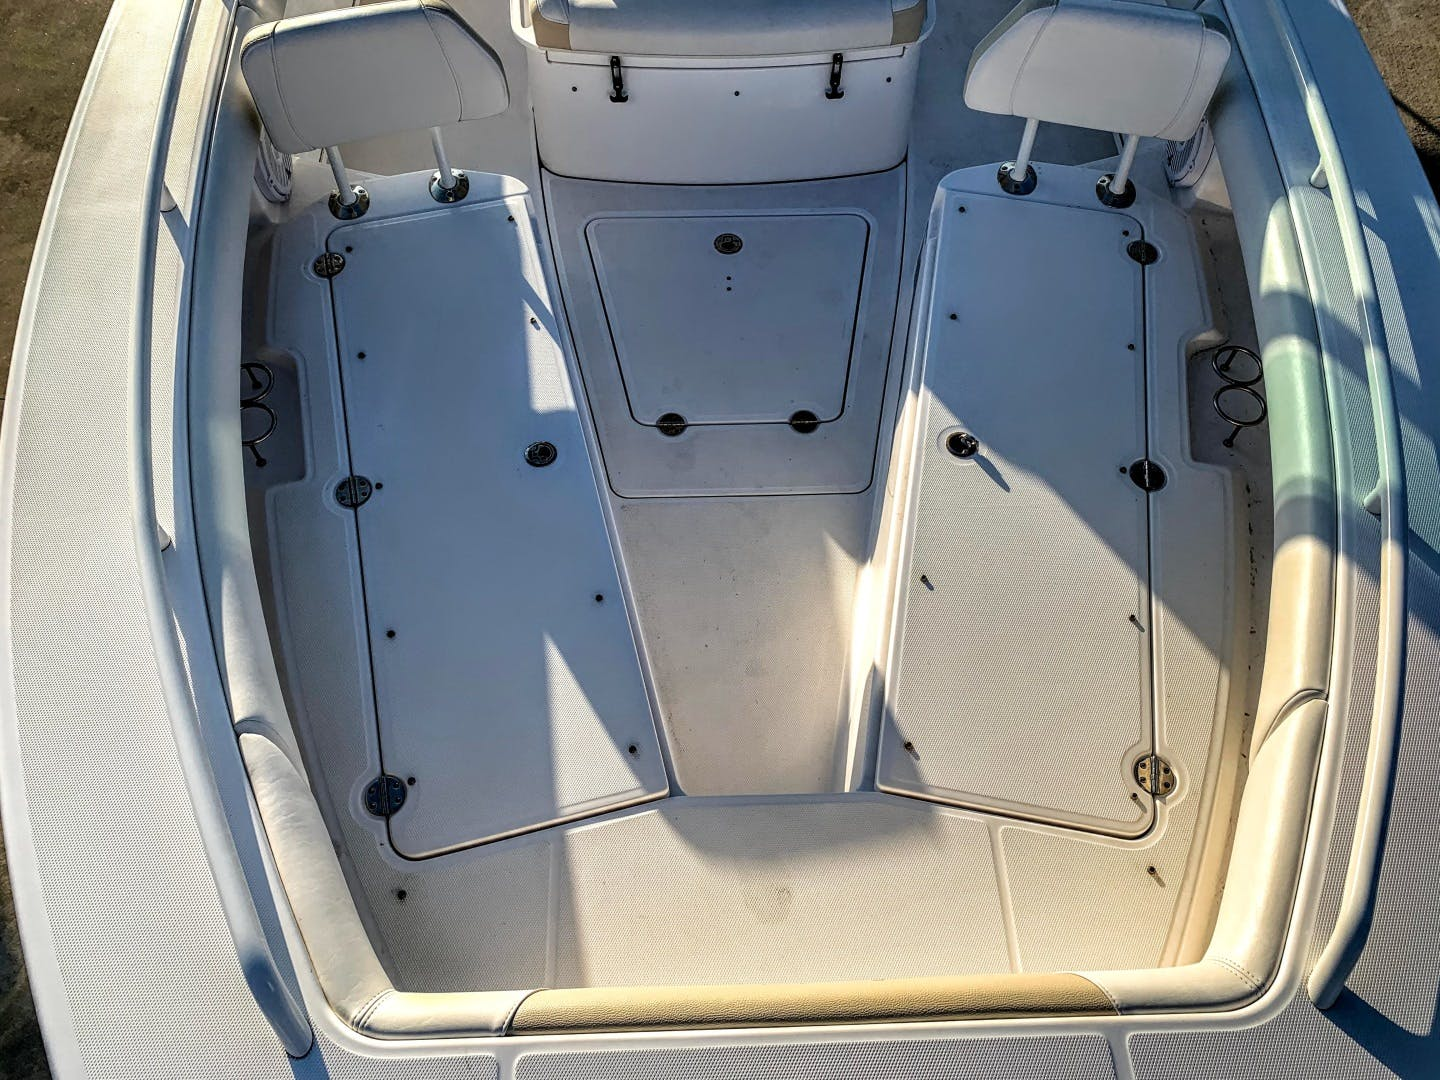 2018 Everglades 27' 273 Center Console No Name | Picture 5 of 20